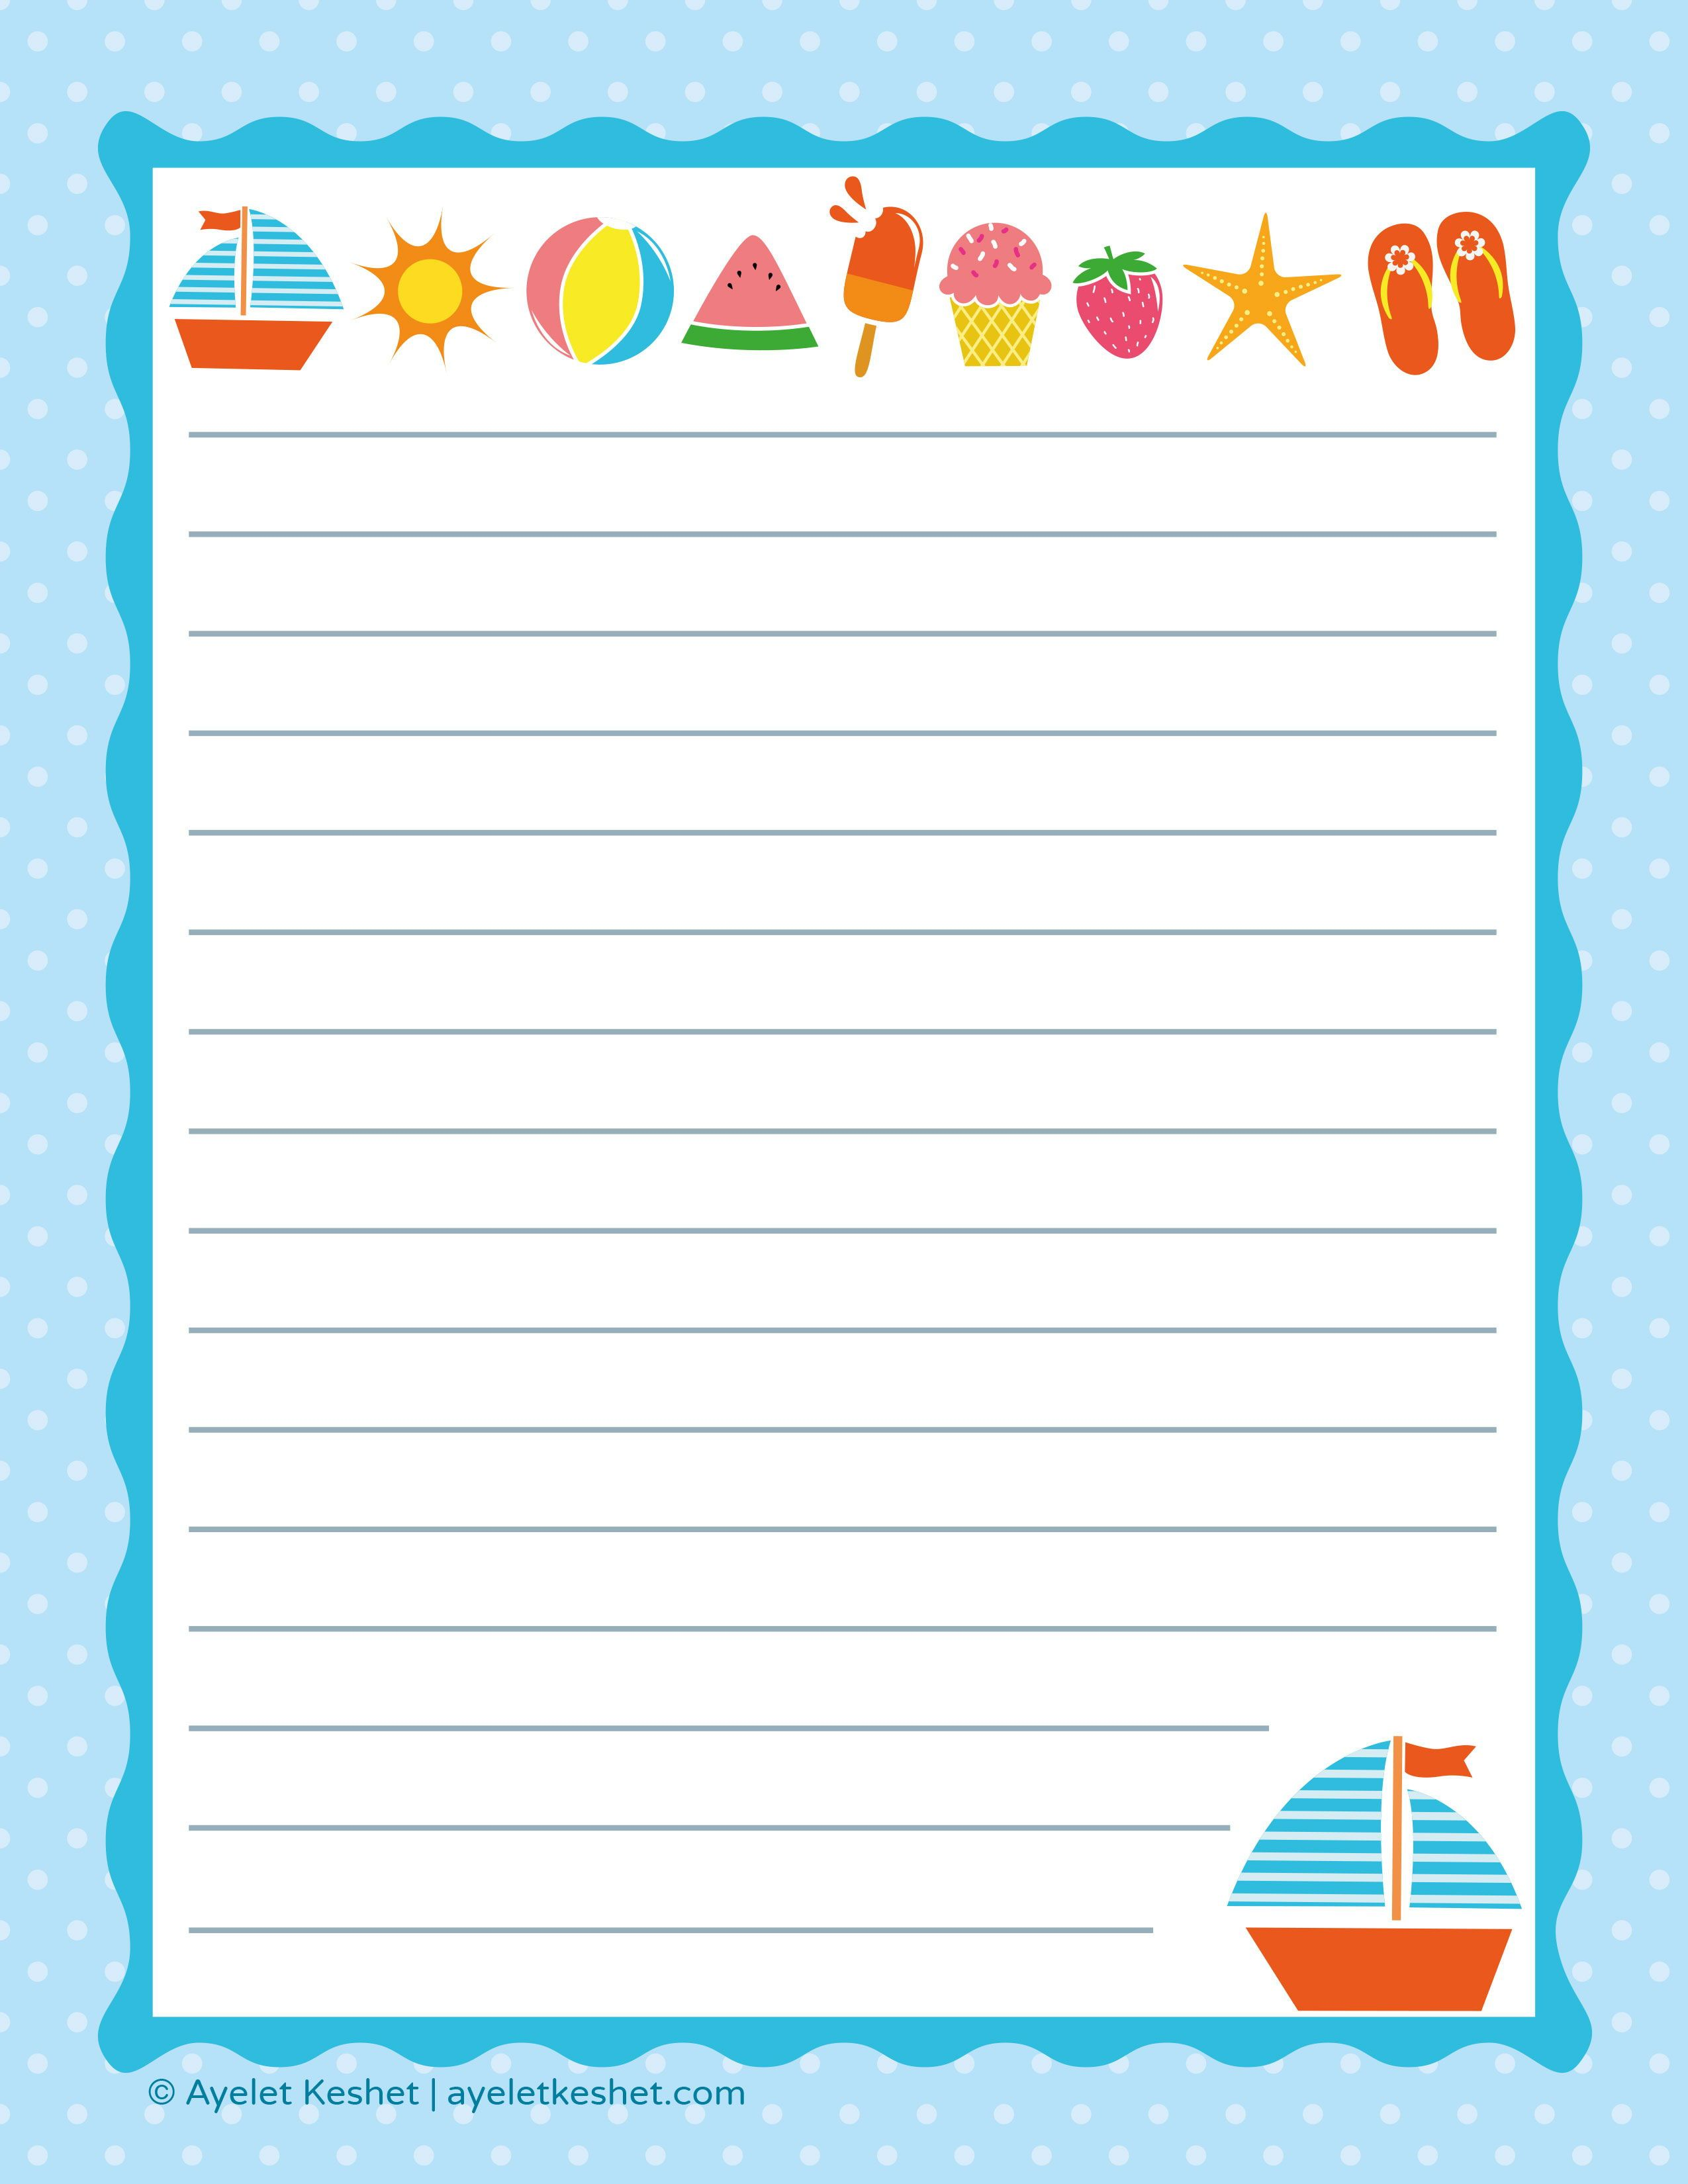 Free Printable Writing Paper With Images